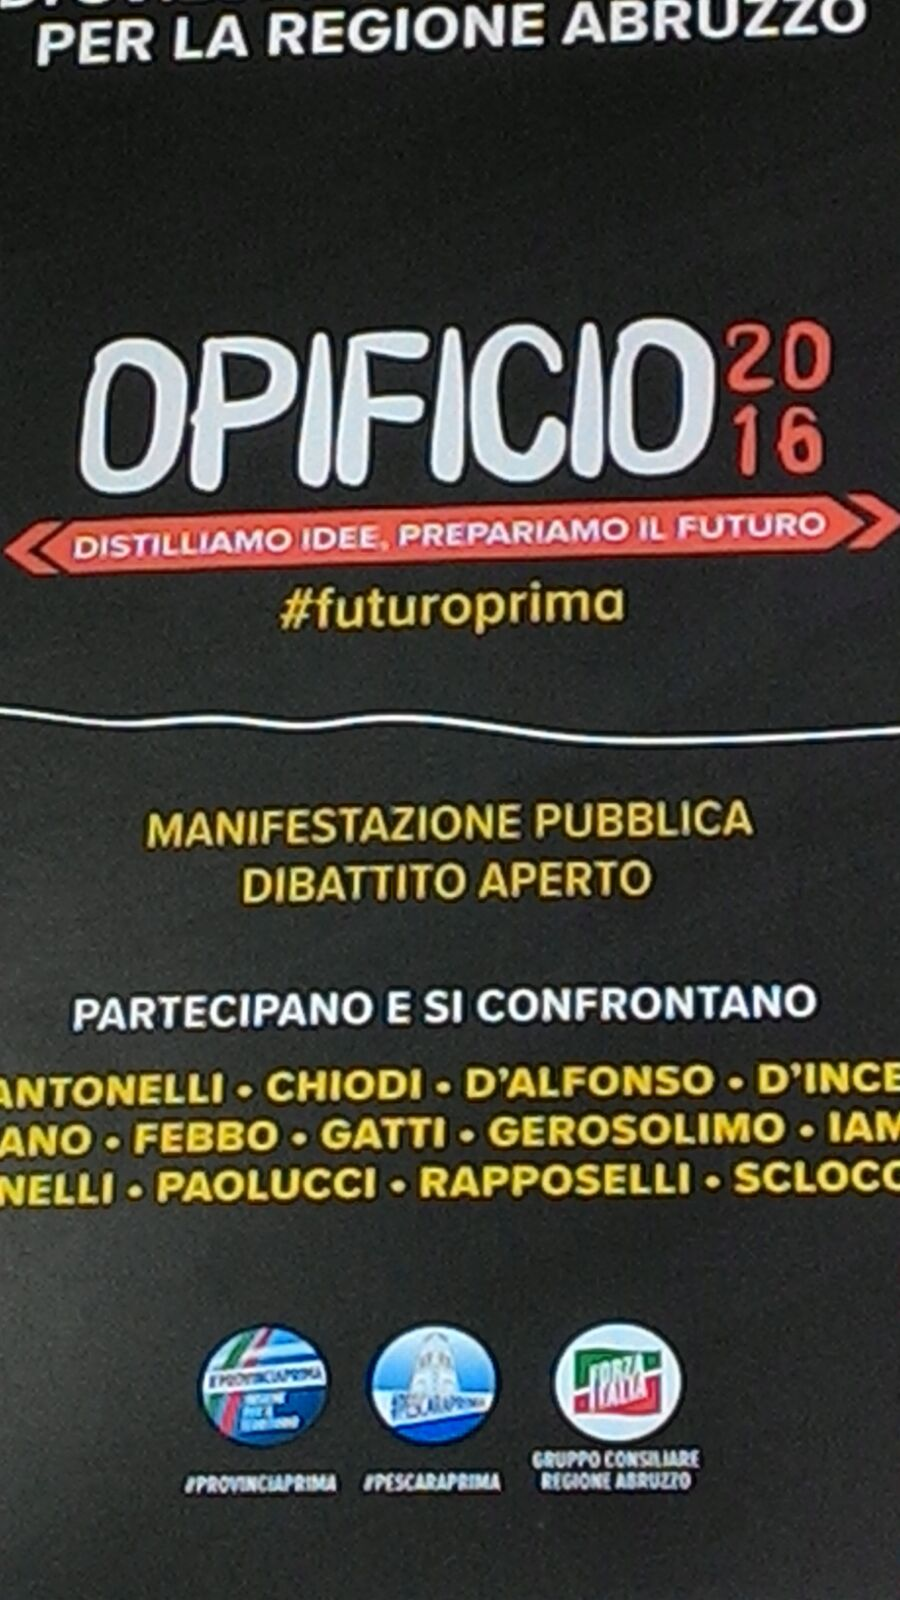 Opificio 2016 all'Aurum di Pescara